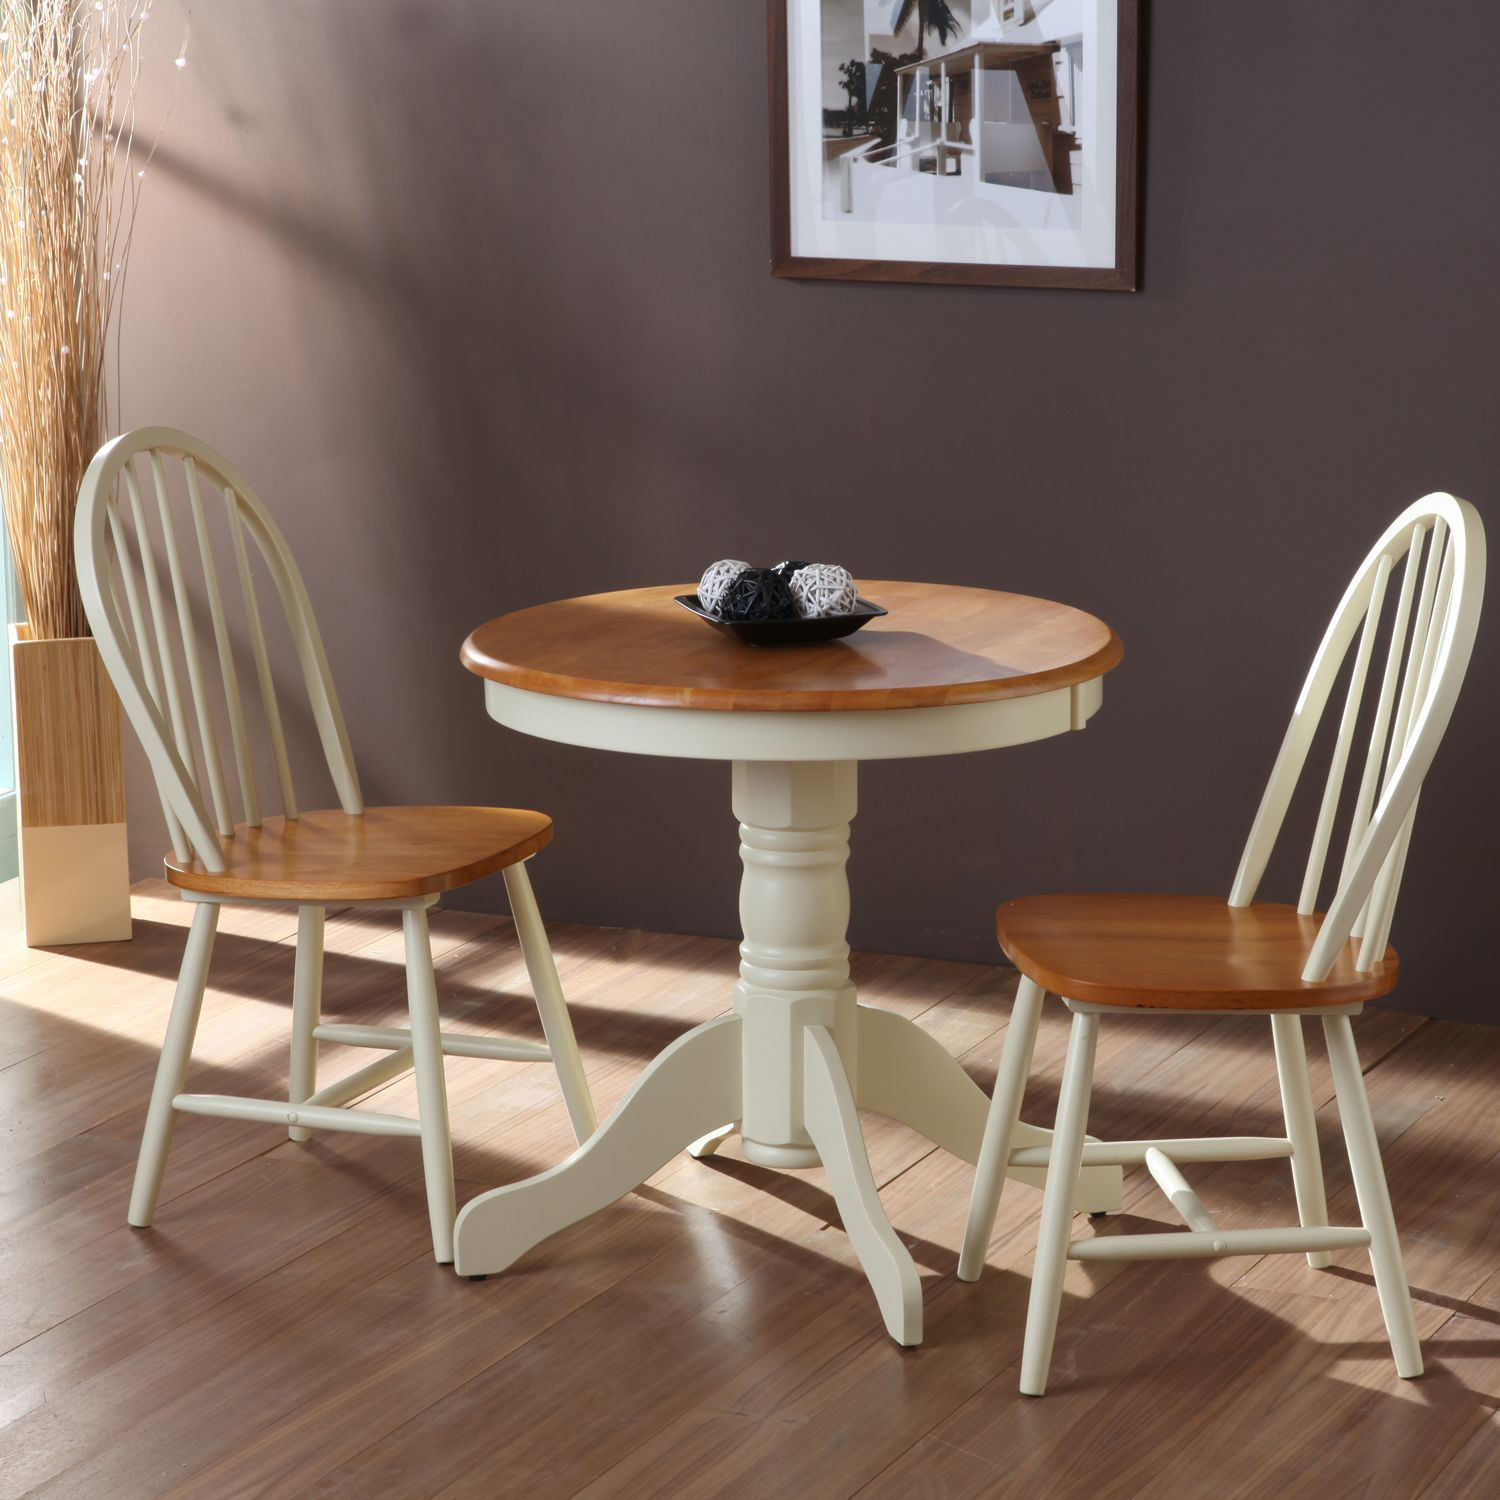 KitchenDining Chairs For Sale Contemporary Dining Room